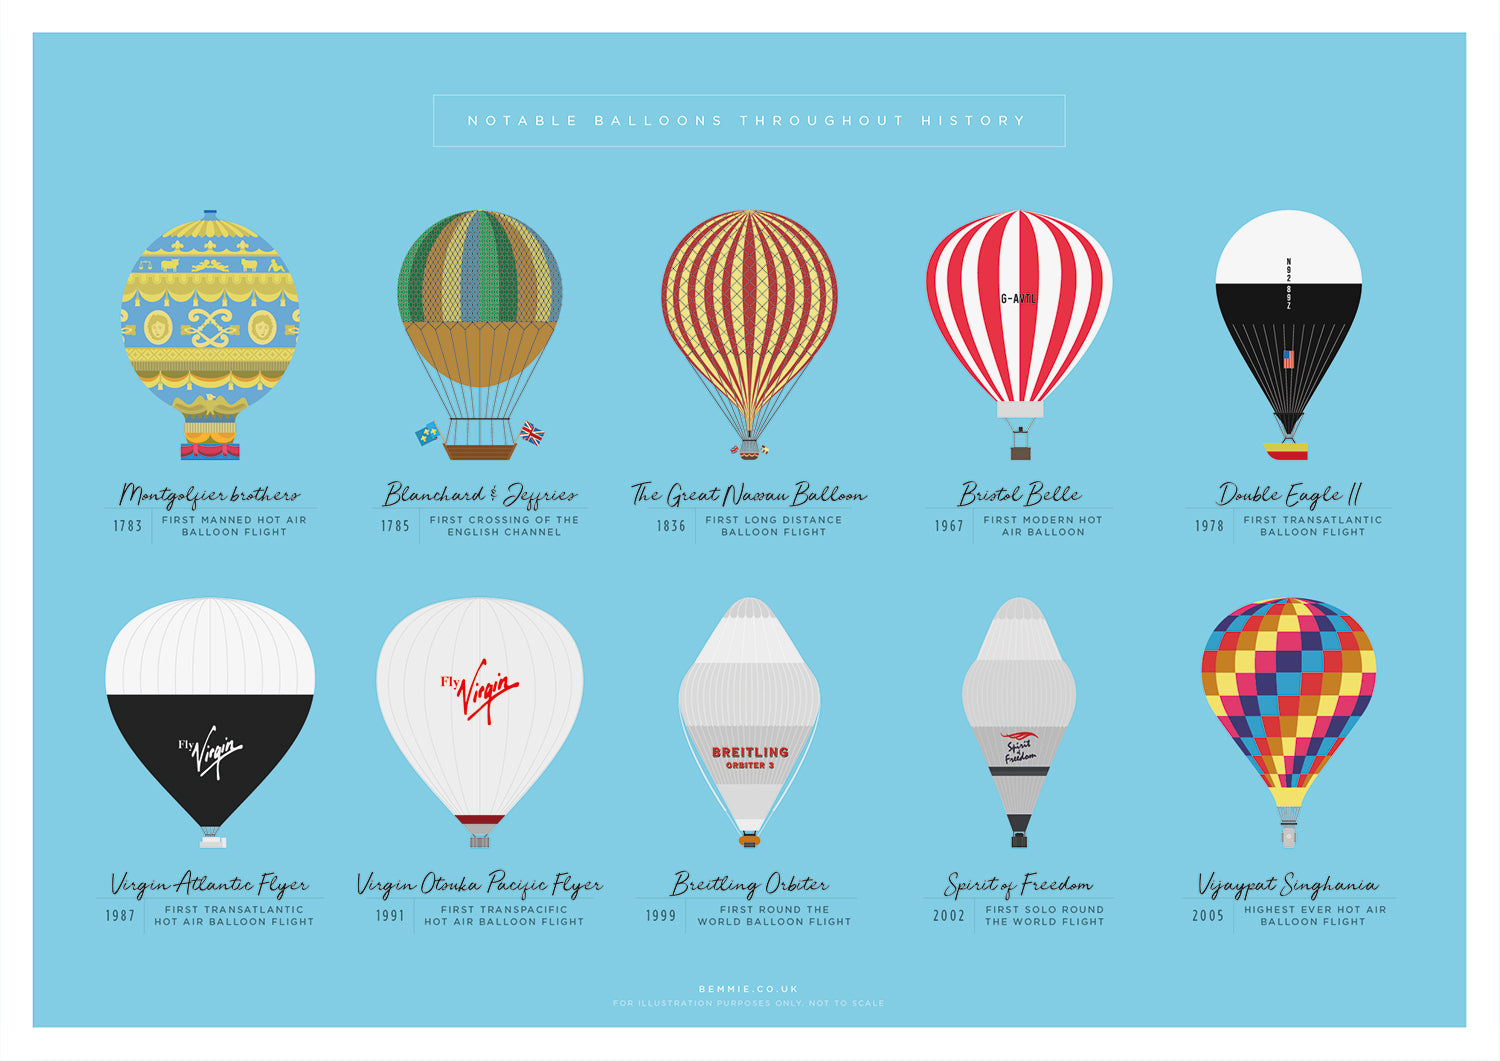 Notable Hot Air Balloons Throughout History Print - BemmiesBazaar